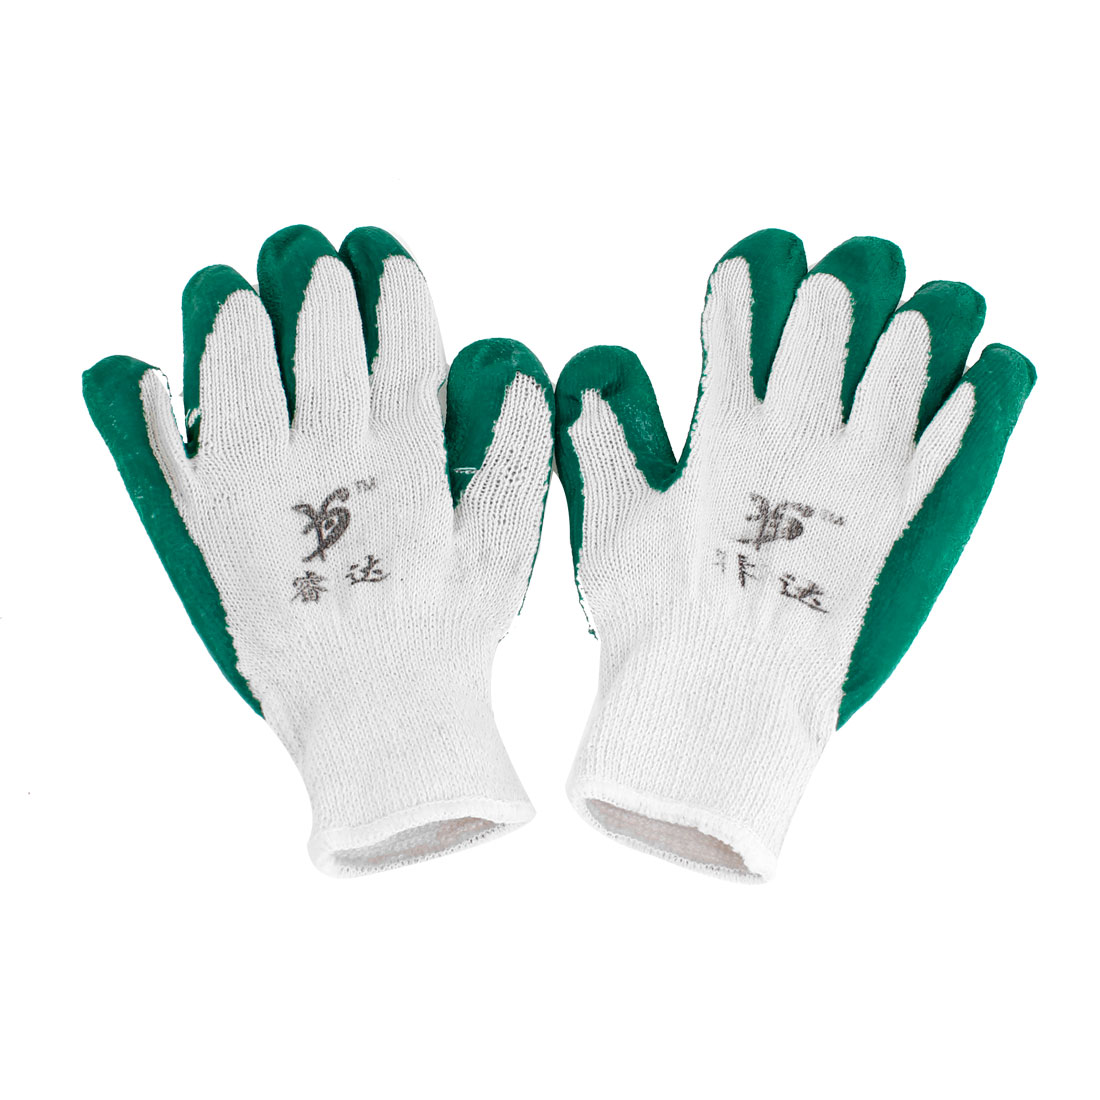 Elastic Cuff Green Latex Rubber Coated Gardening Working Gloves White Pair